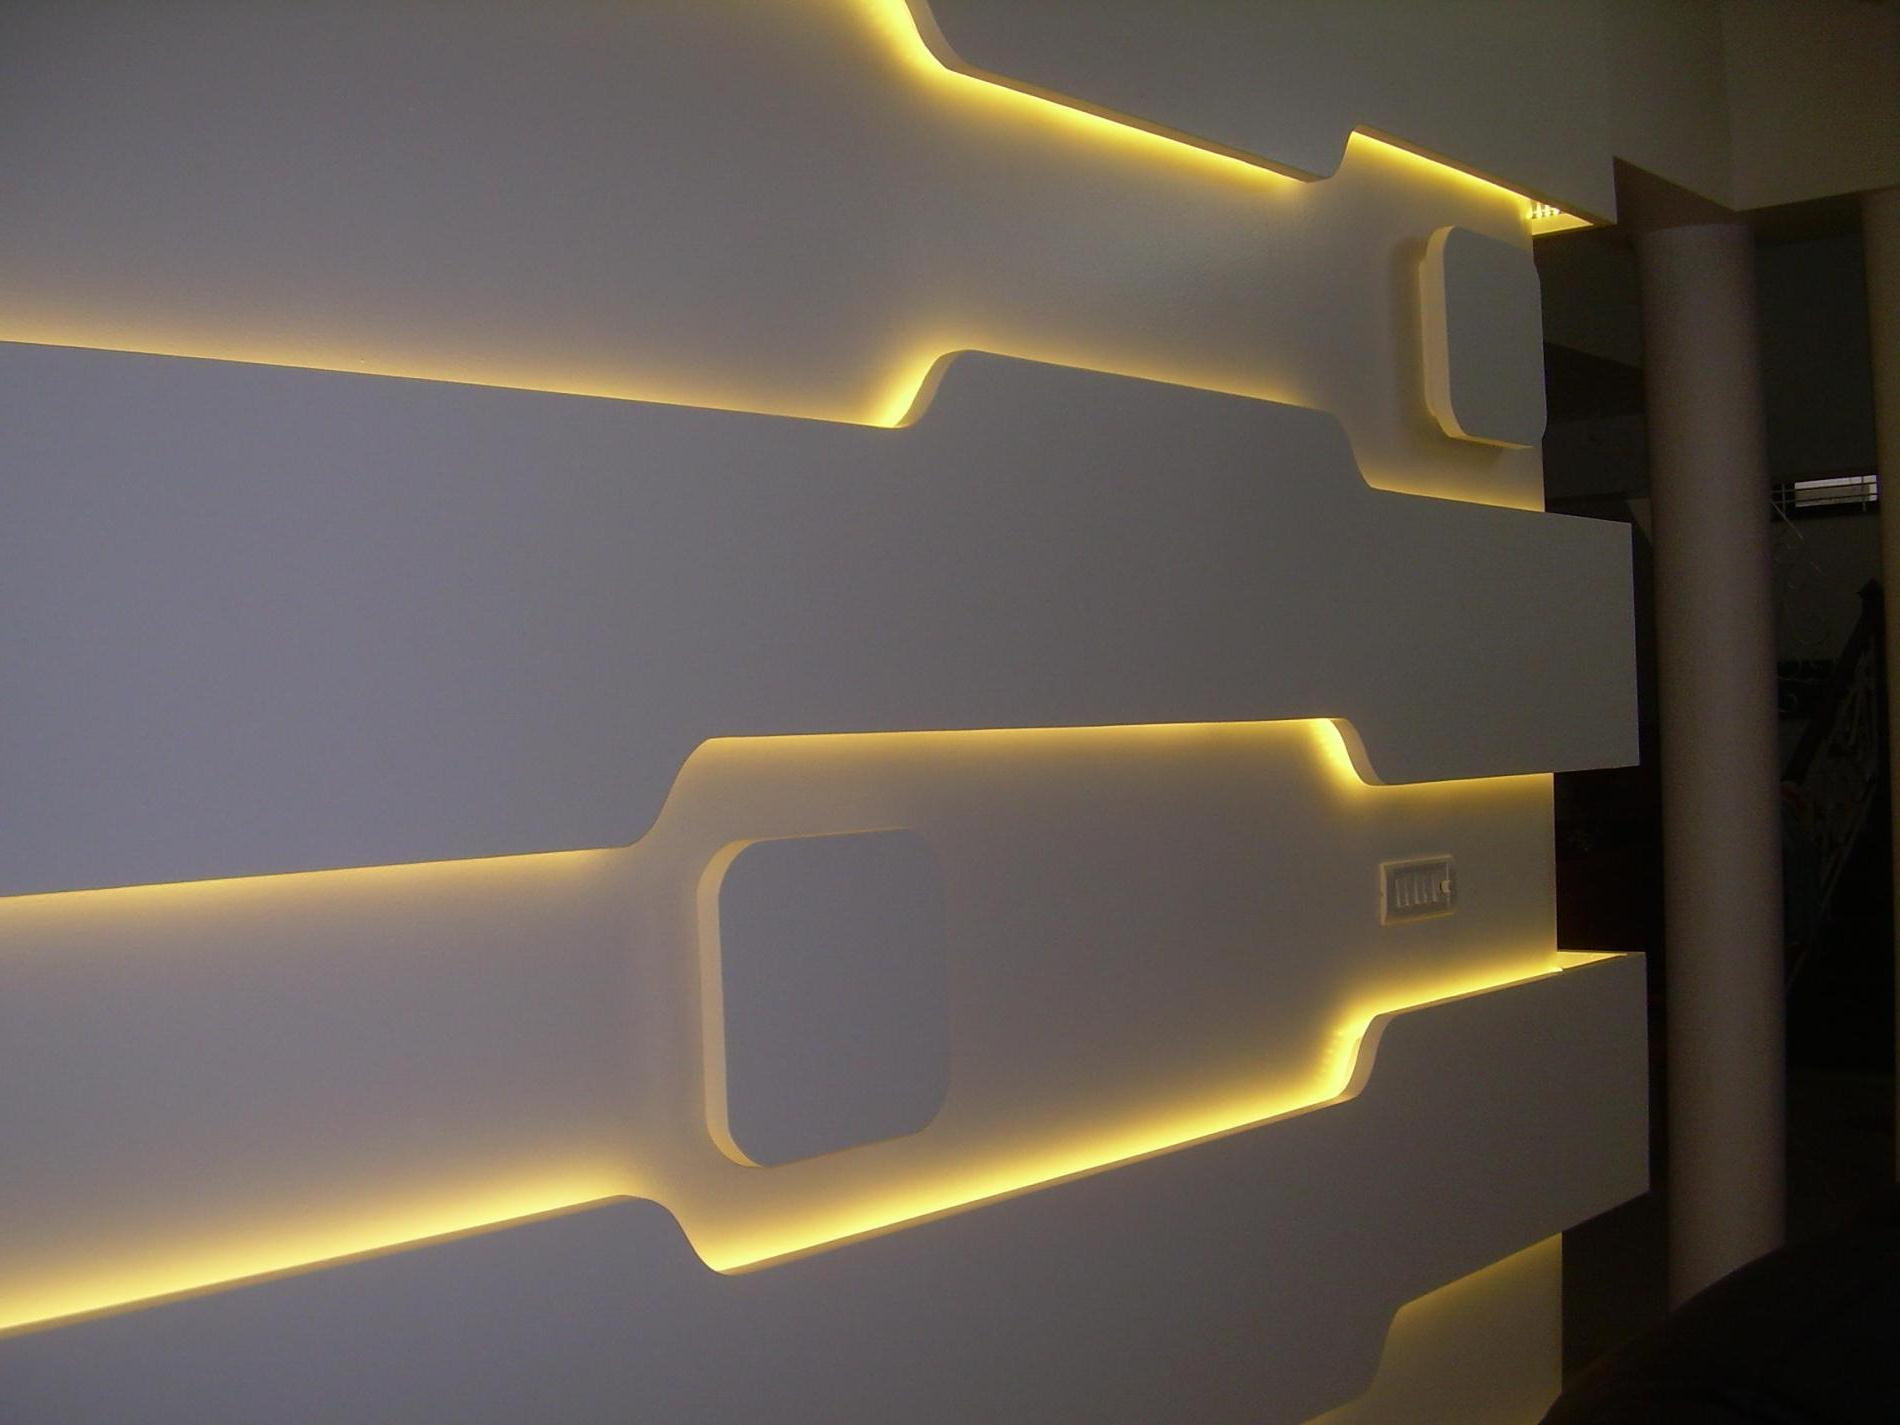 Wonderful led lights design acnn decor